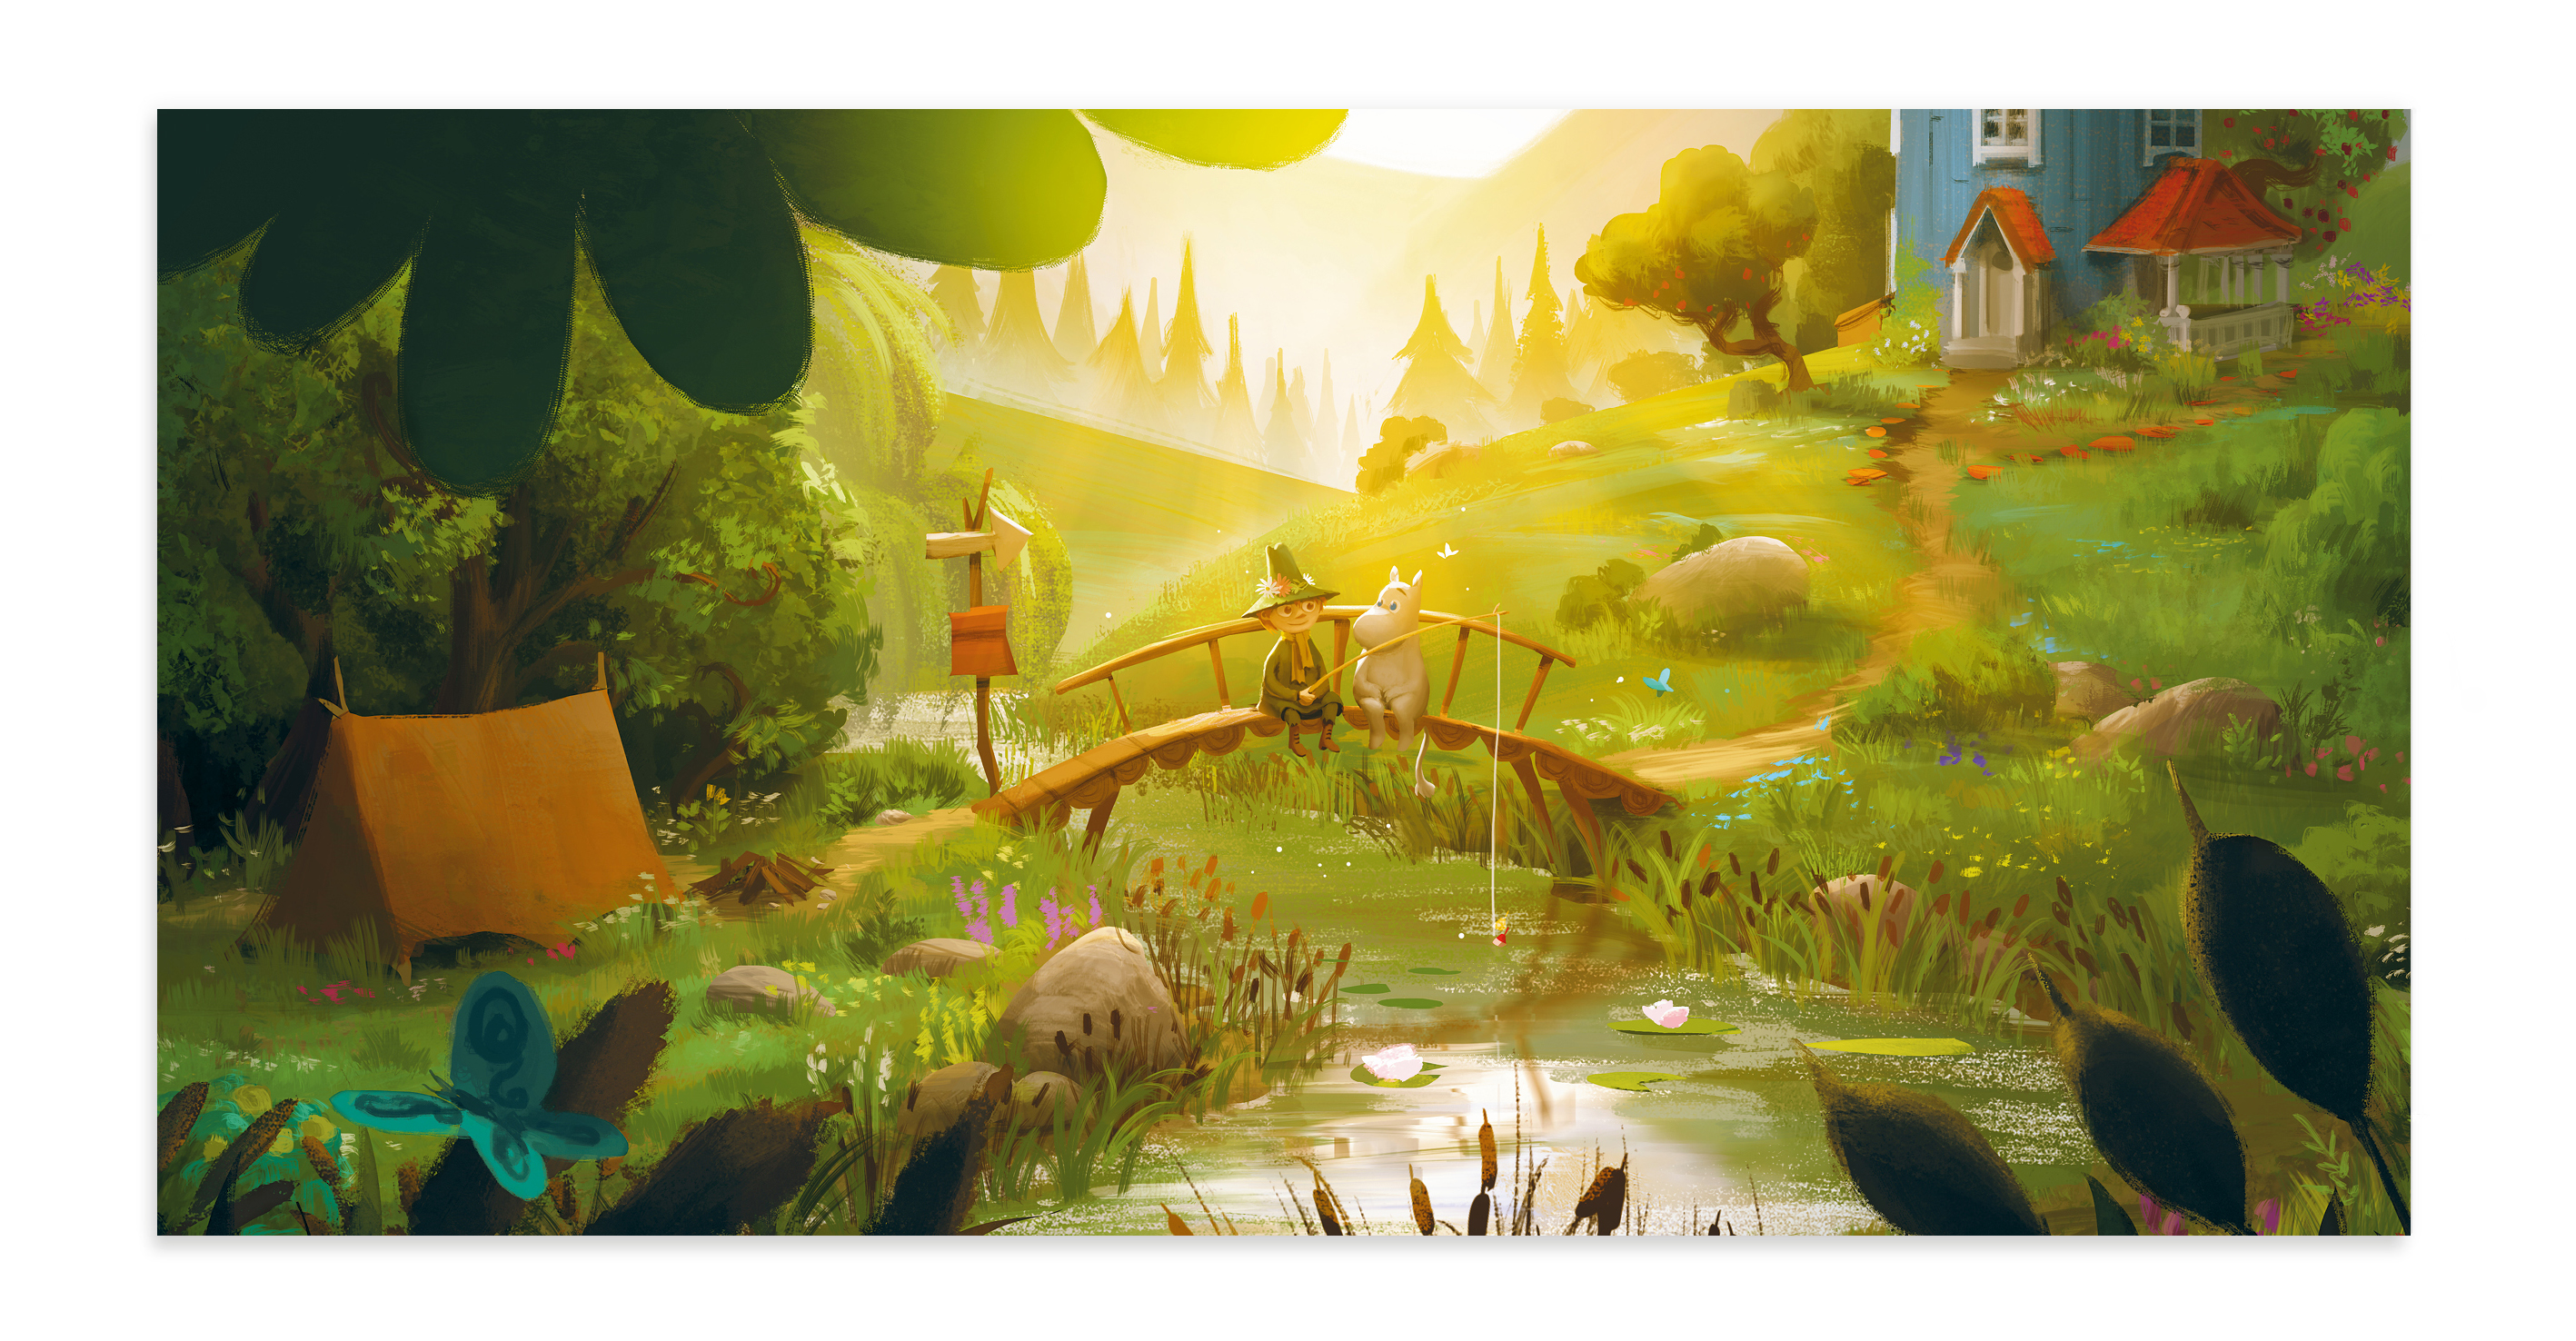 Putinki Panoramic Postcard Moominvalley Last Dragon